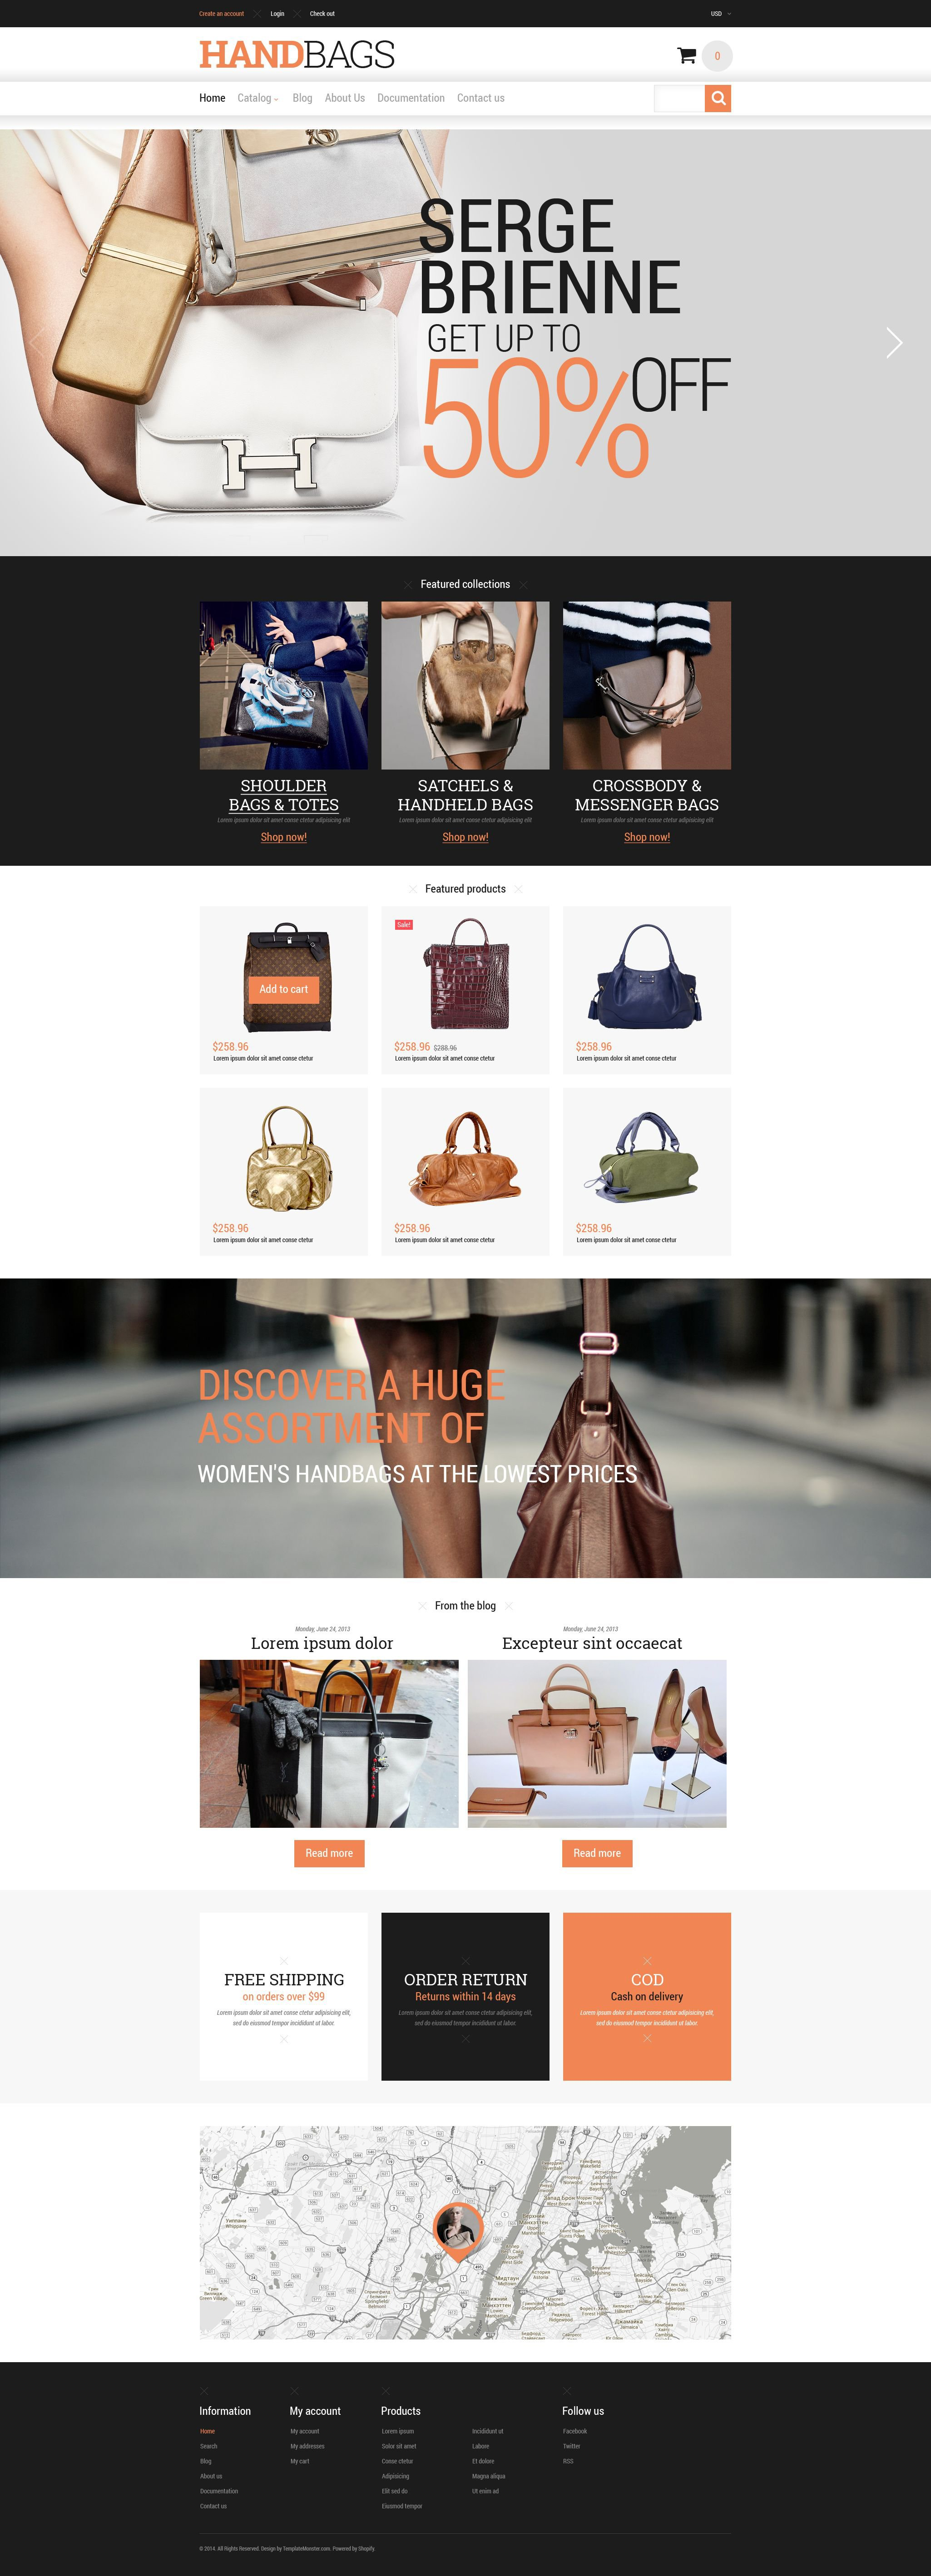 Branded Handbags Shopify Theme - screenshot